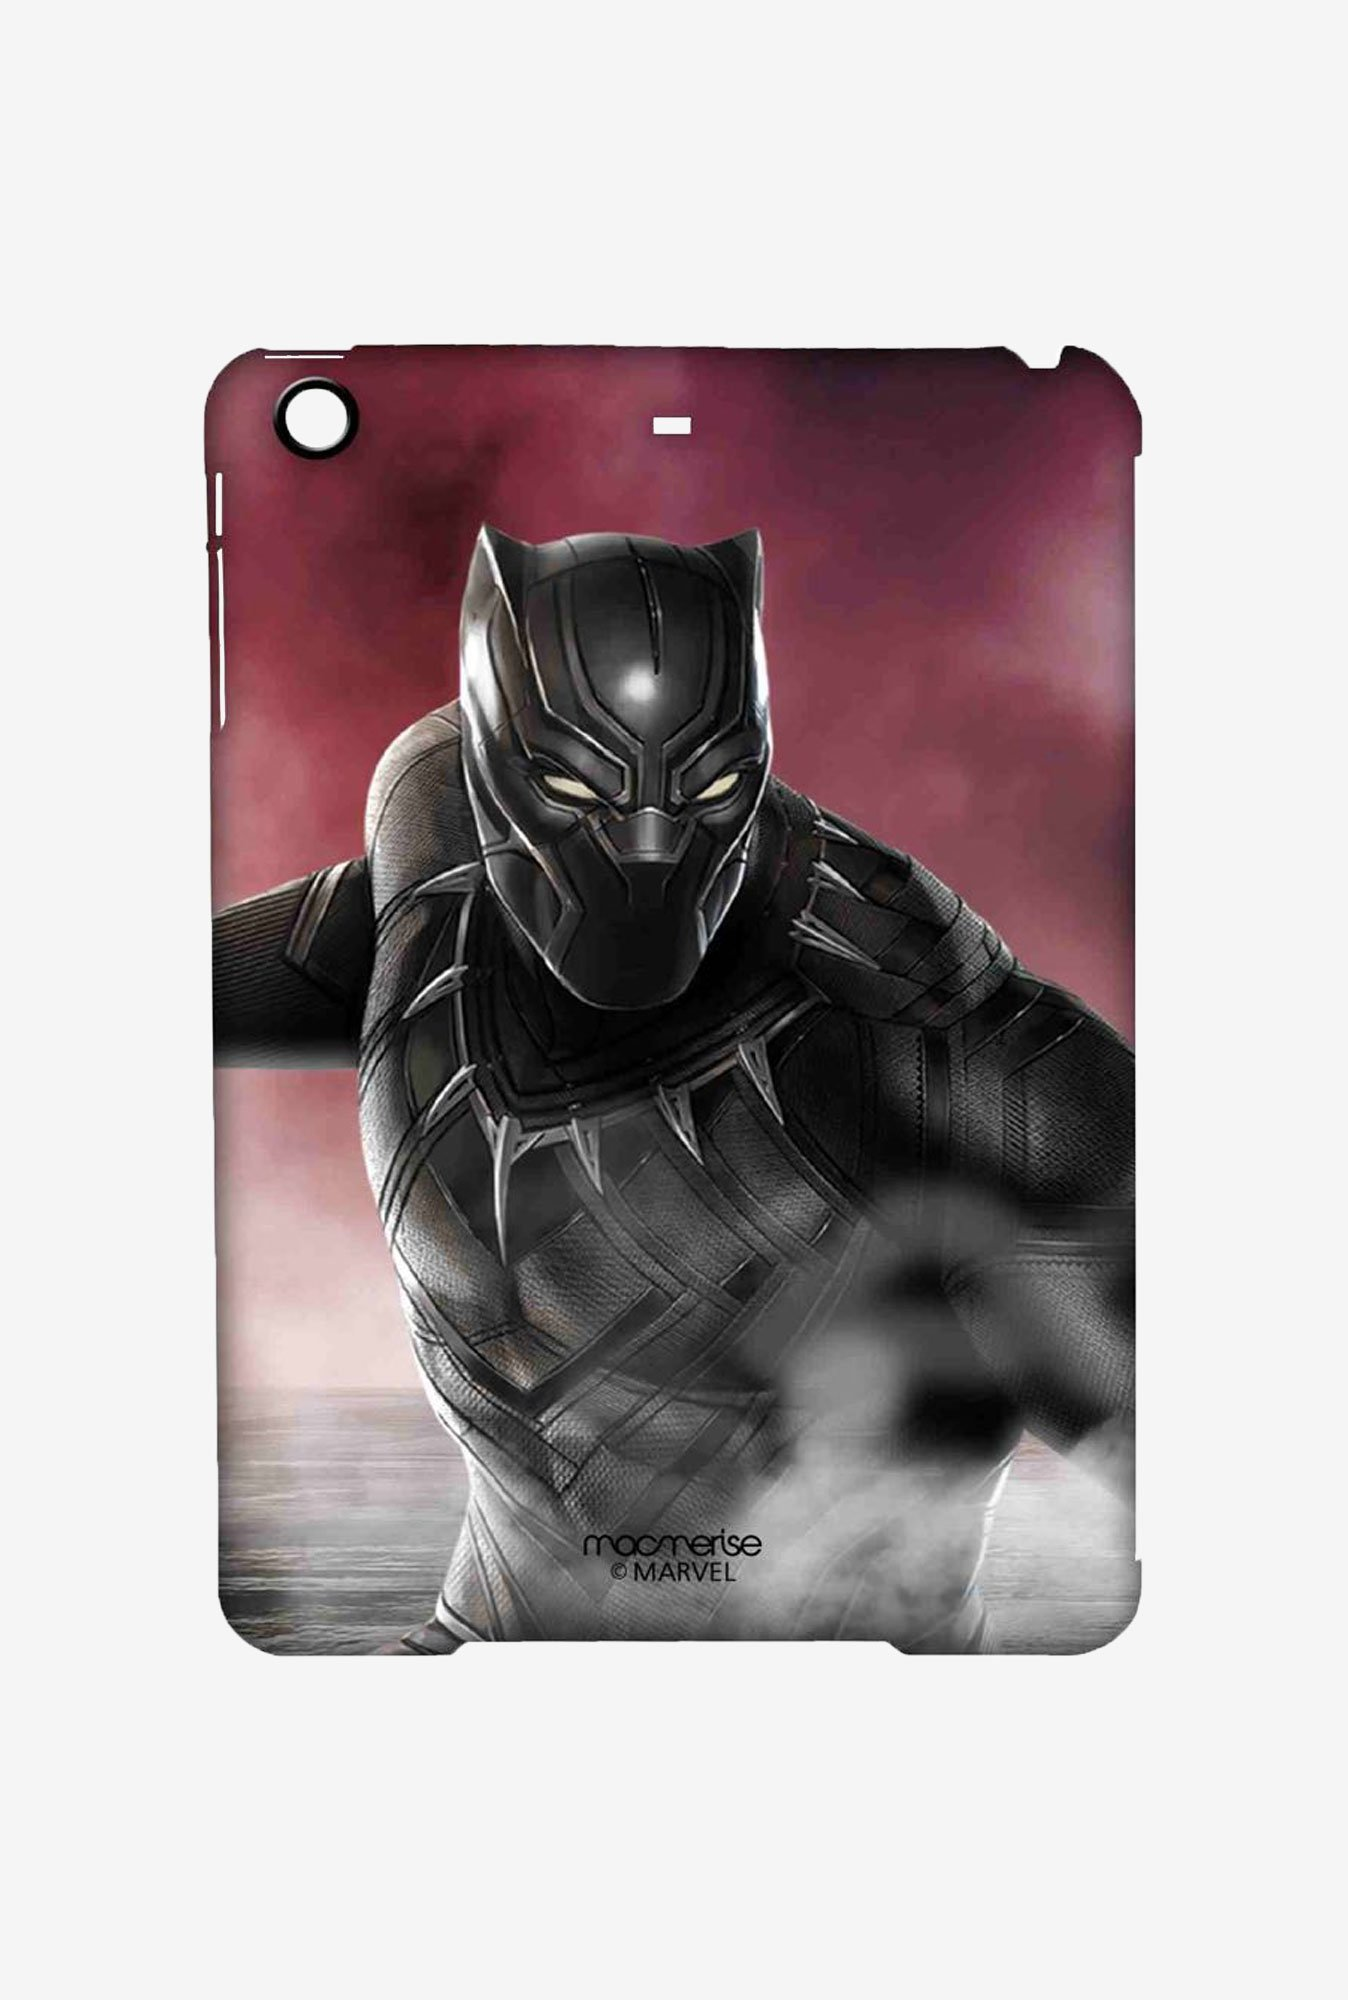 Macmerise Team Red Black Panther Pro Case for iPad 2/3/4